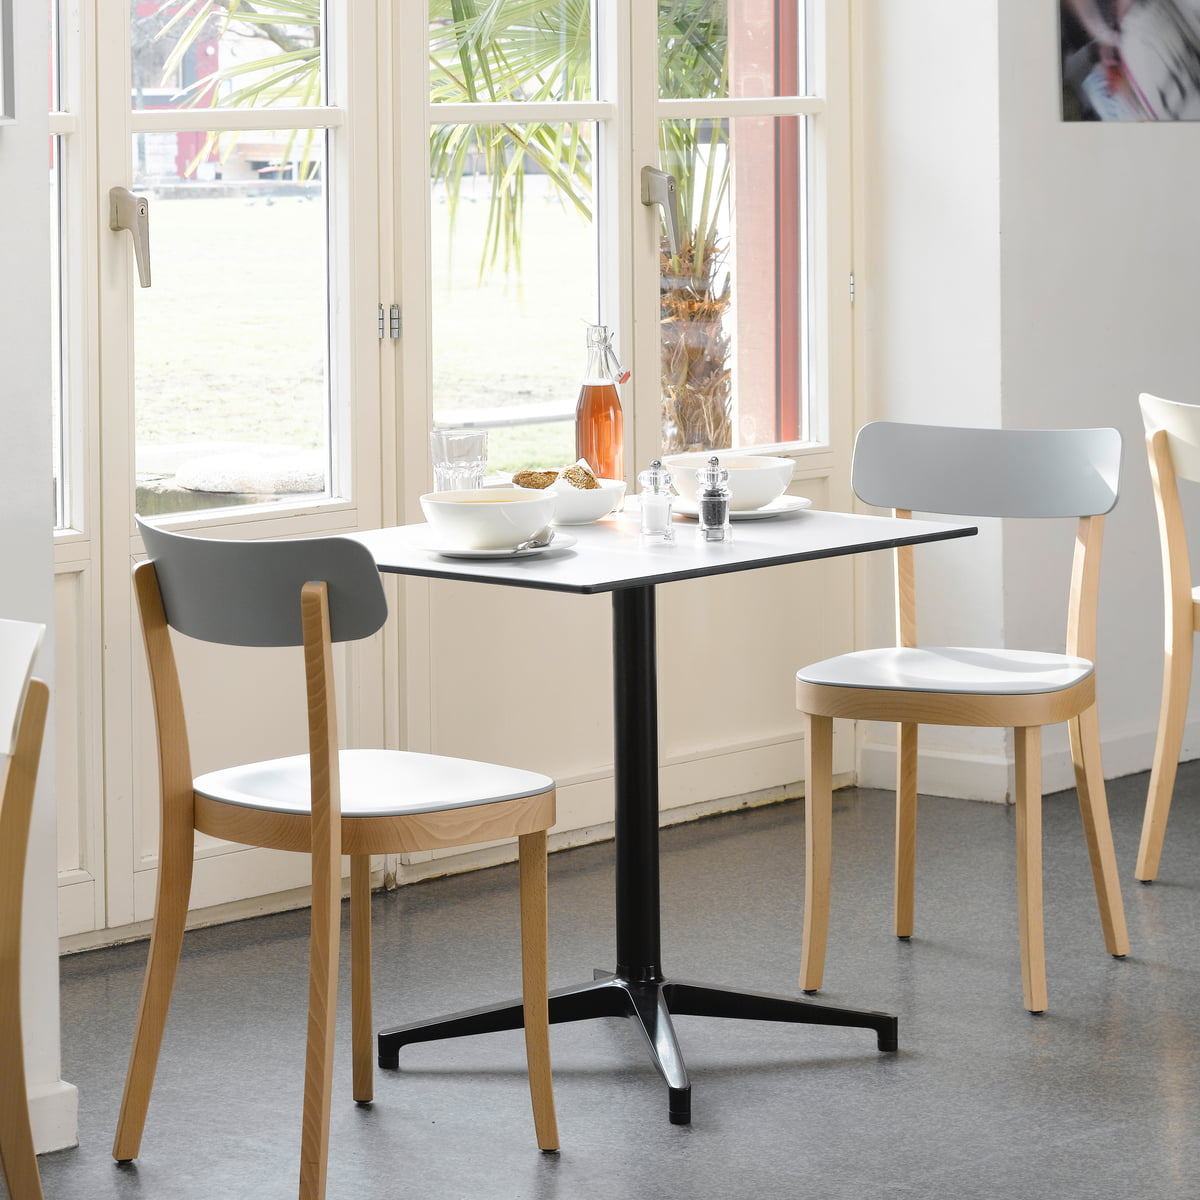 Indoor bistro table and chairs - Vitra Bistro Table Basel Chair